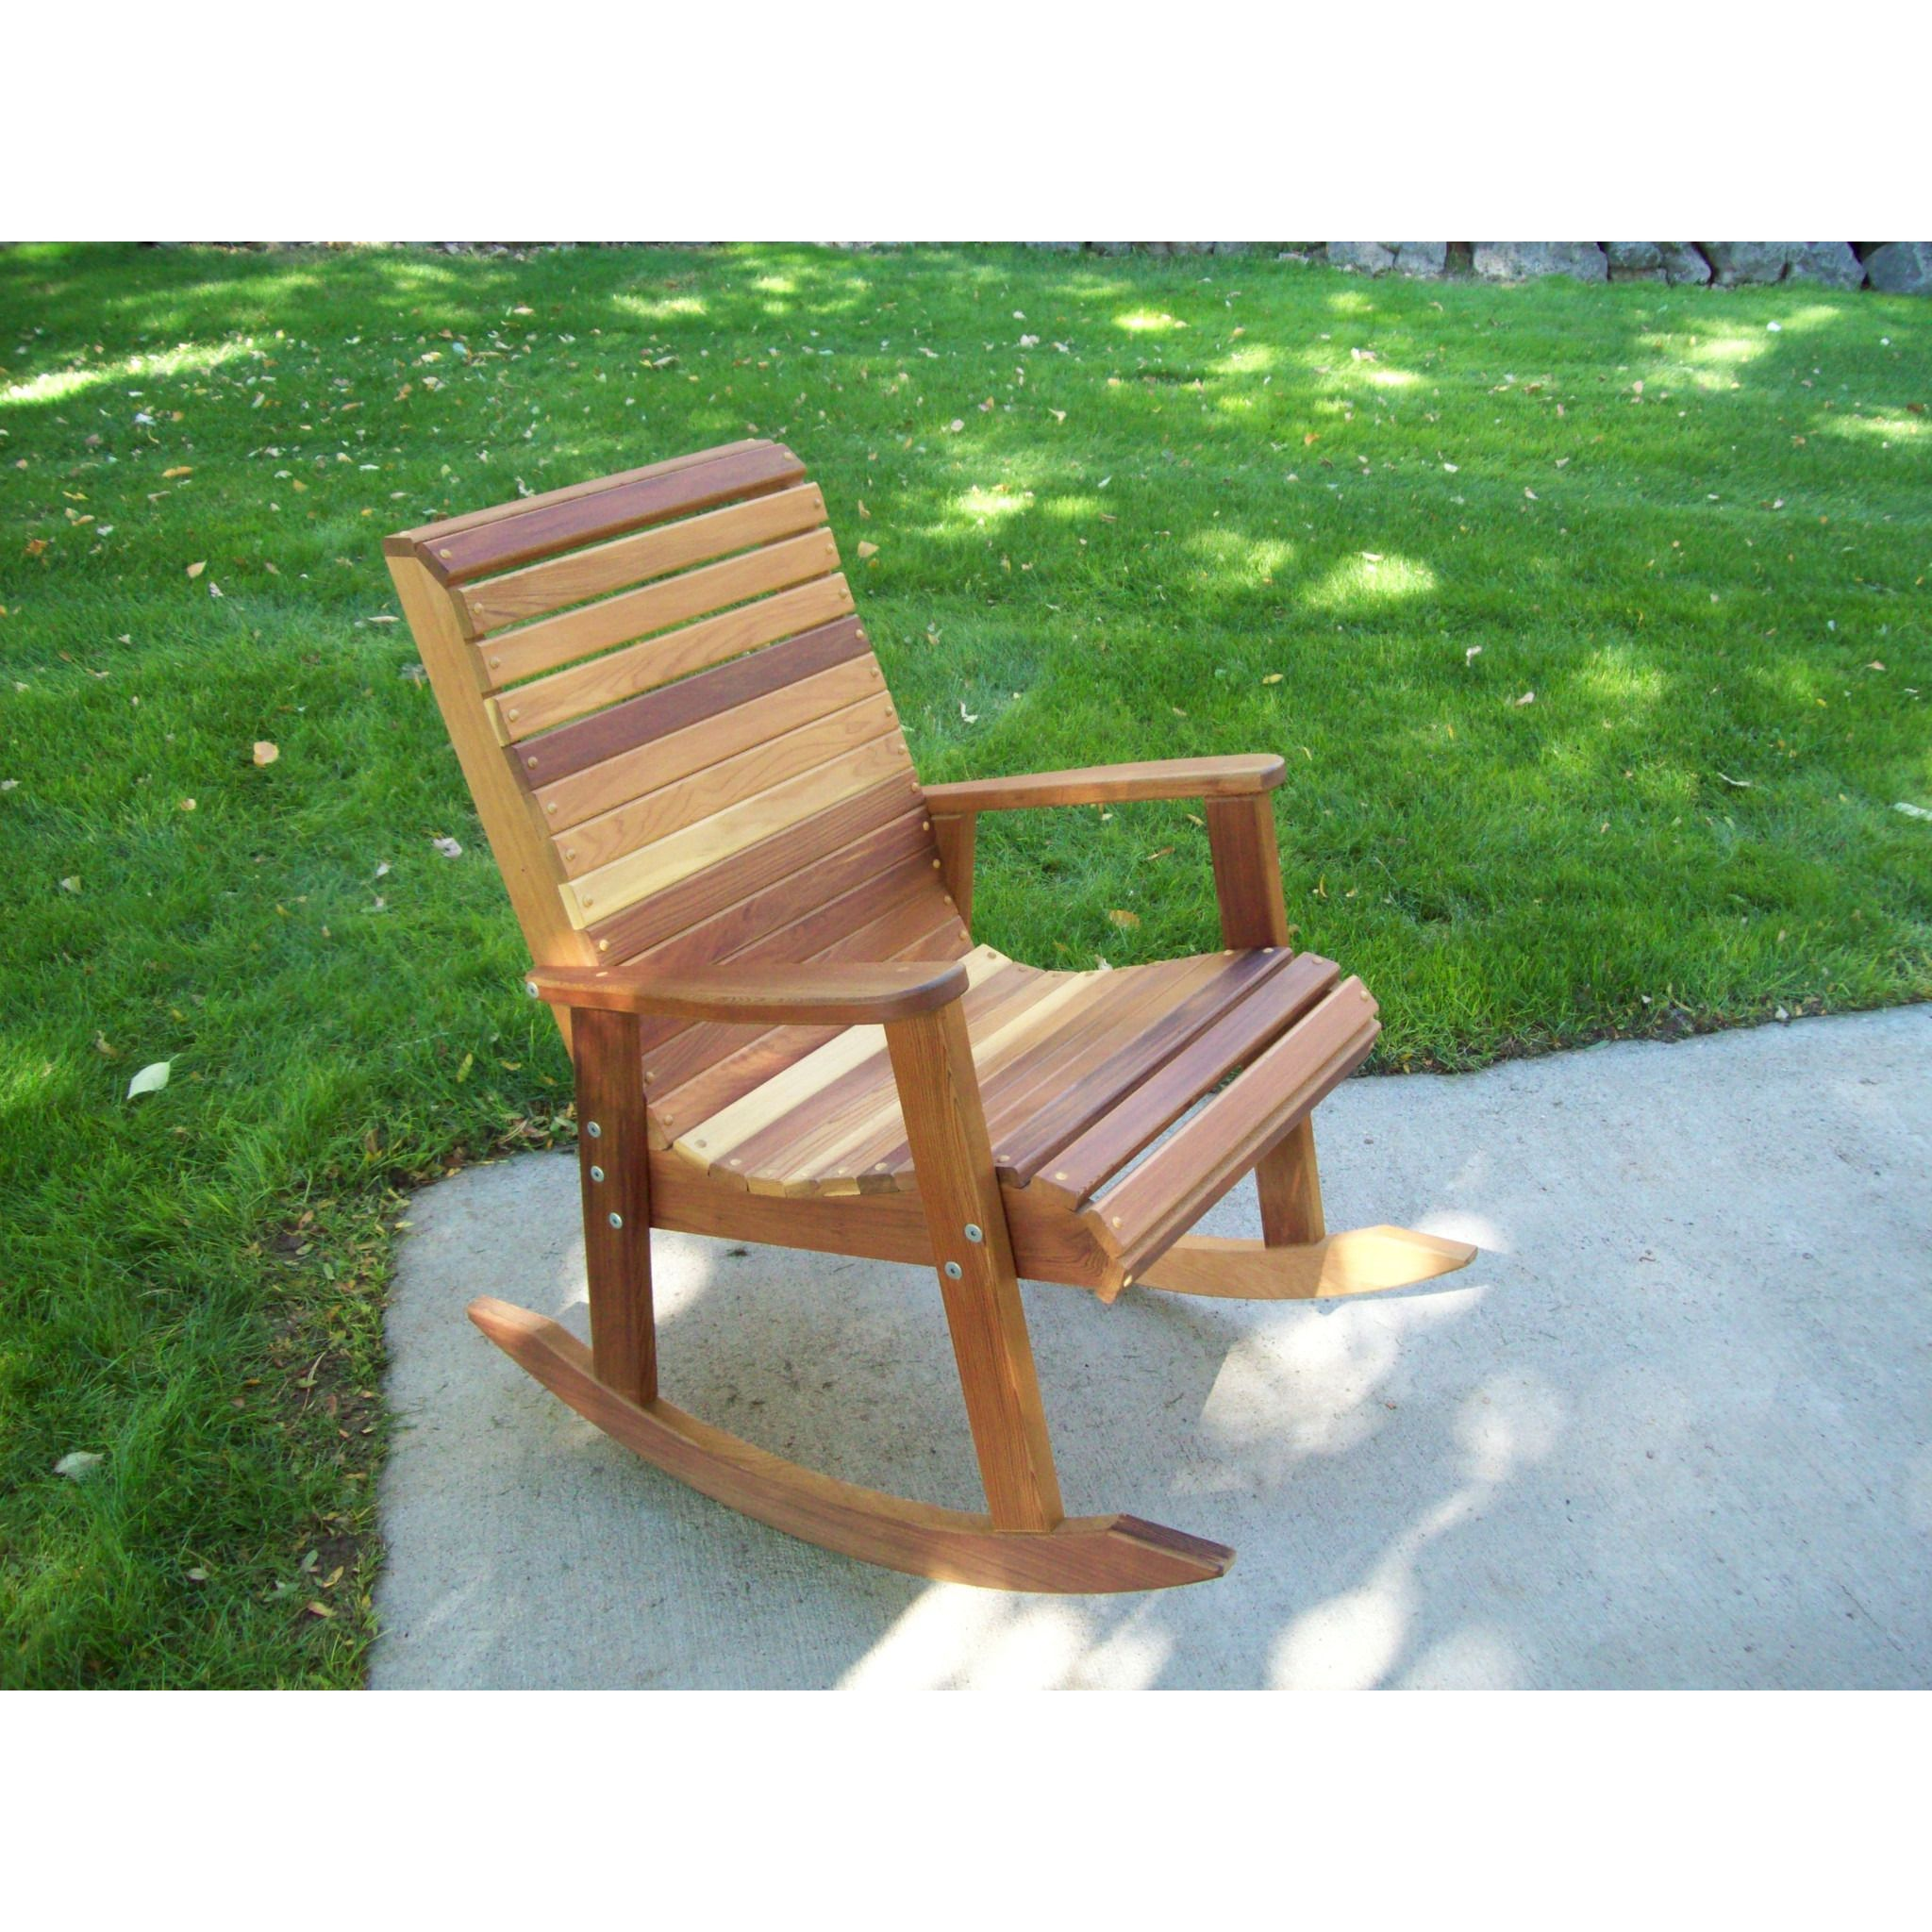 Wood Country T L Red Cedar Rocking Chair Rocking Chair Plans Wooden Rocking Chairs Wood Rocking Chair